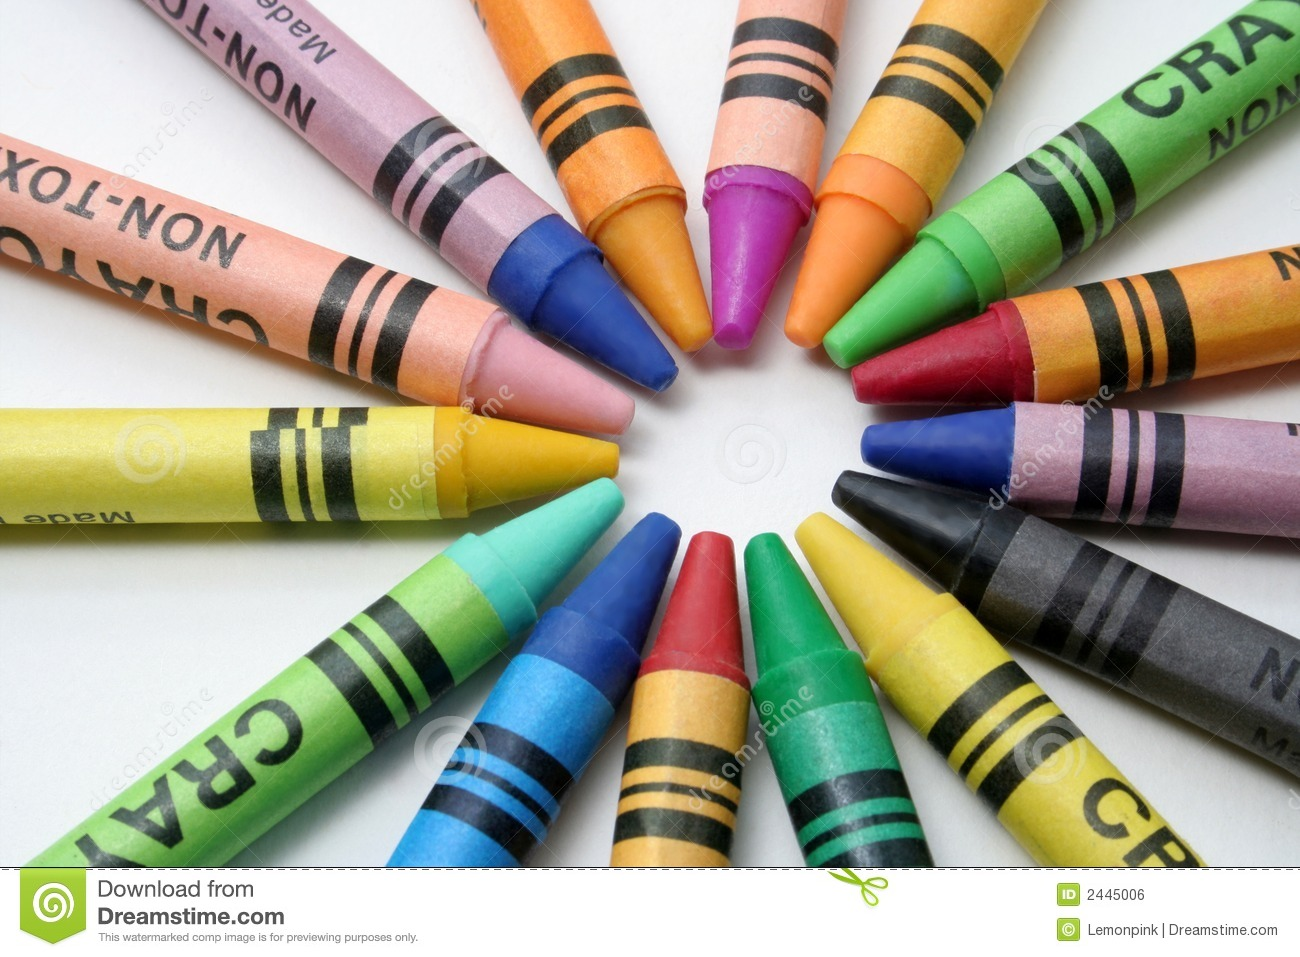 Crayon Colored Circle : Crayons stock photo image of assortment colored